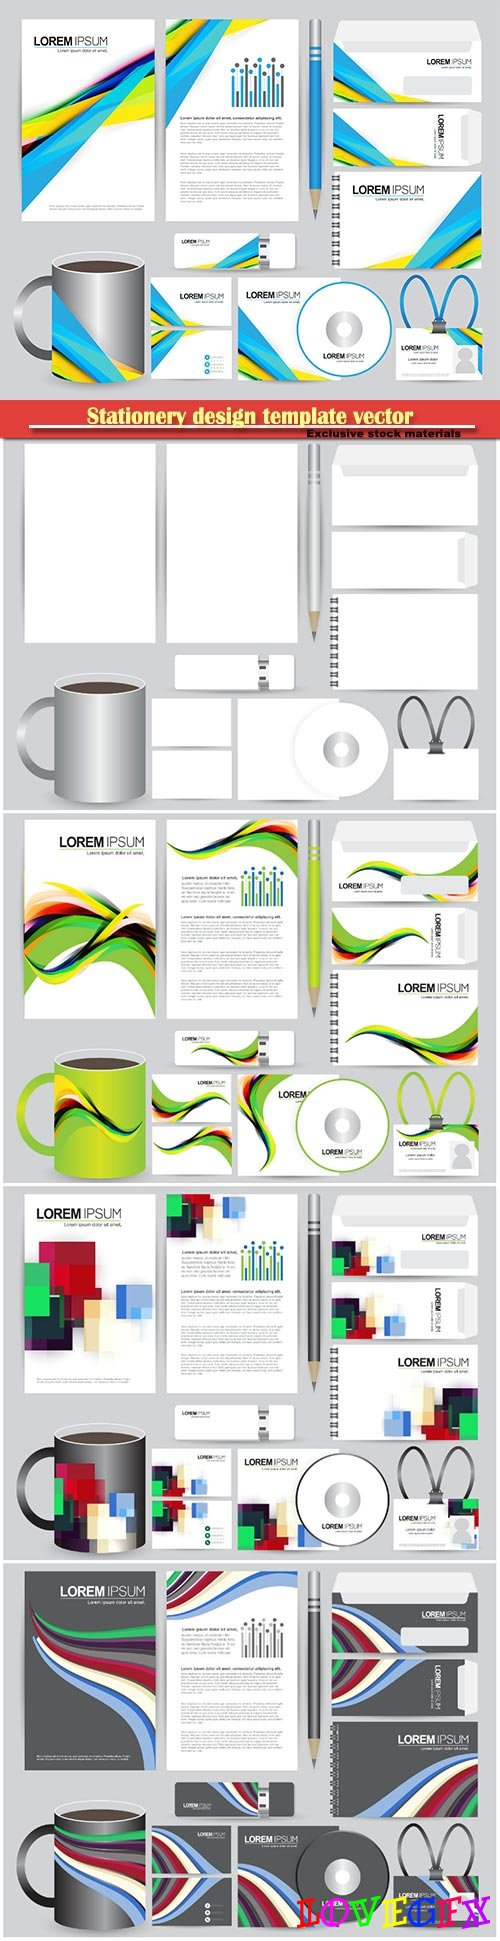 Stationery design template vector illustration